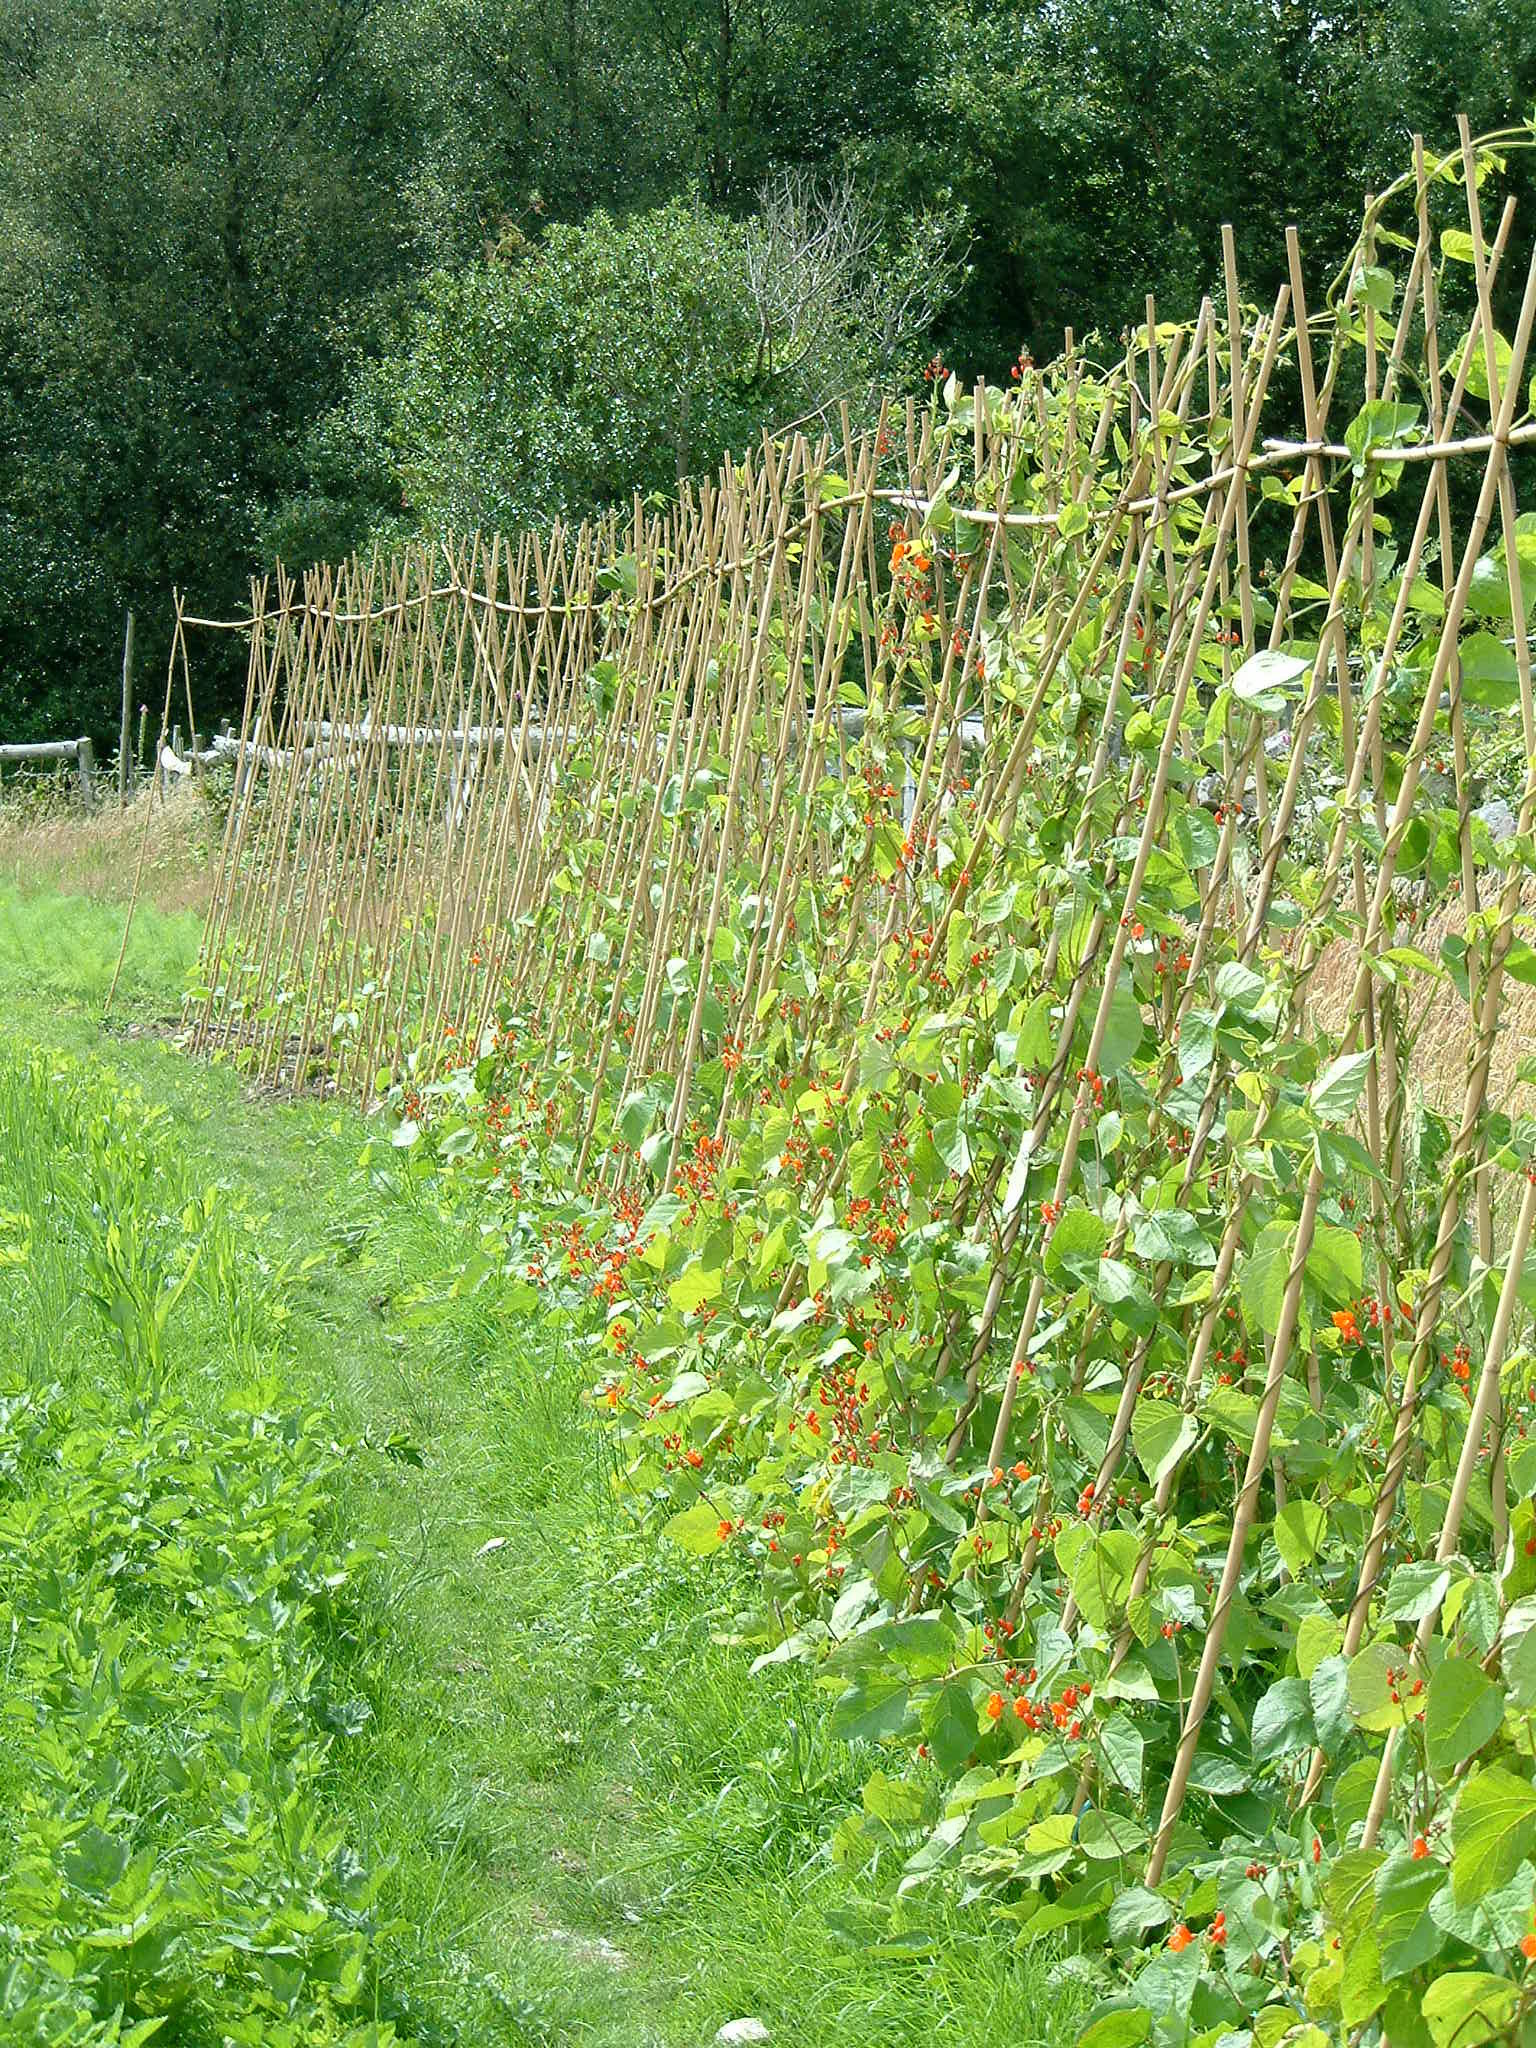 Village_veg_farmpics._20.7.09_054